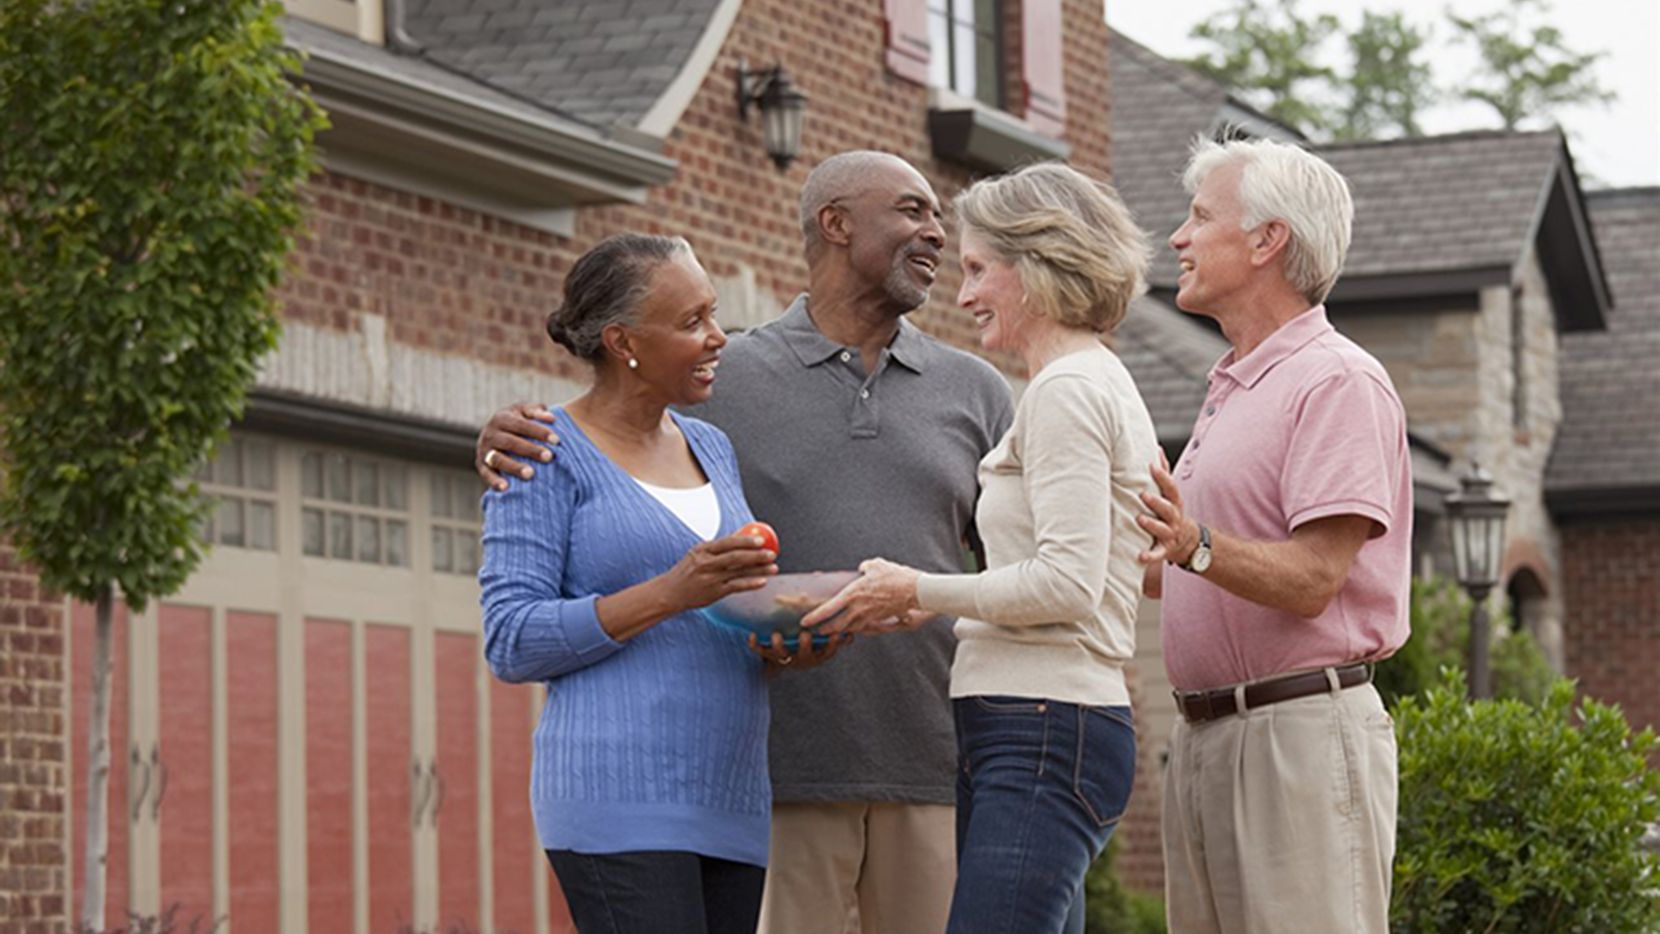 Befriending neighbors helps you build a strong community you can depend on and trust.